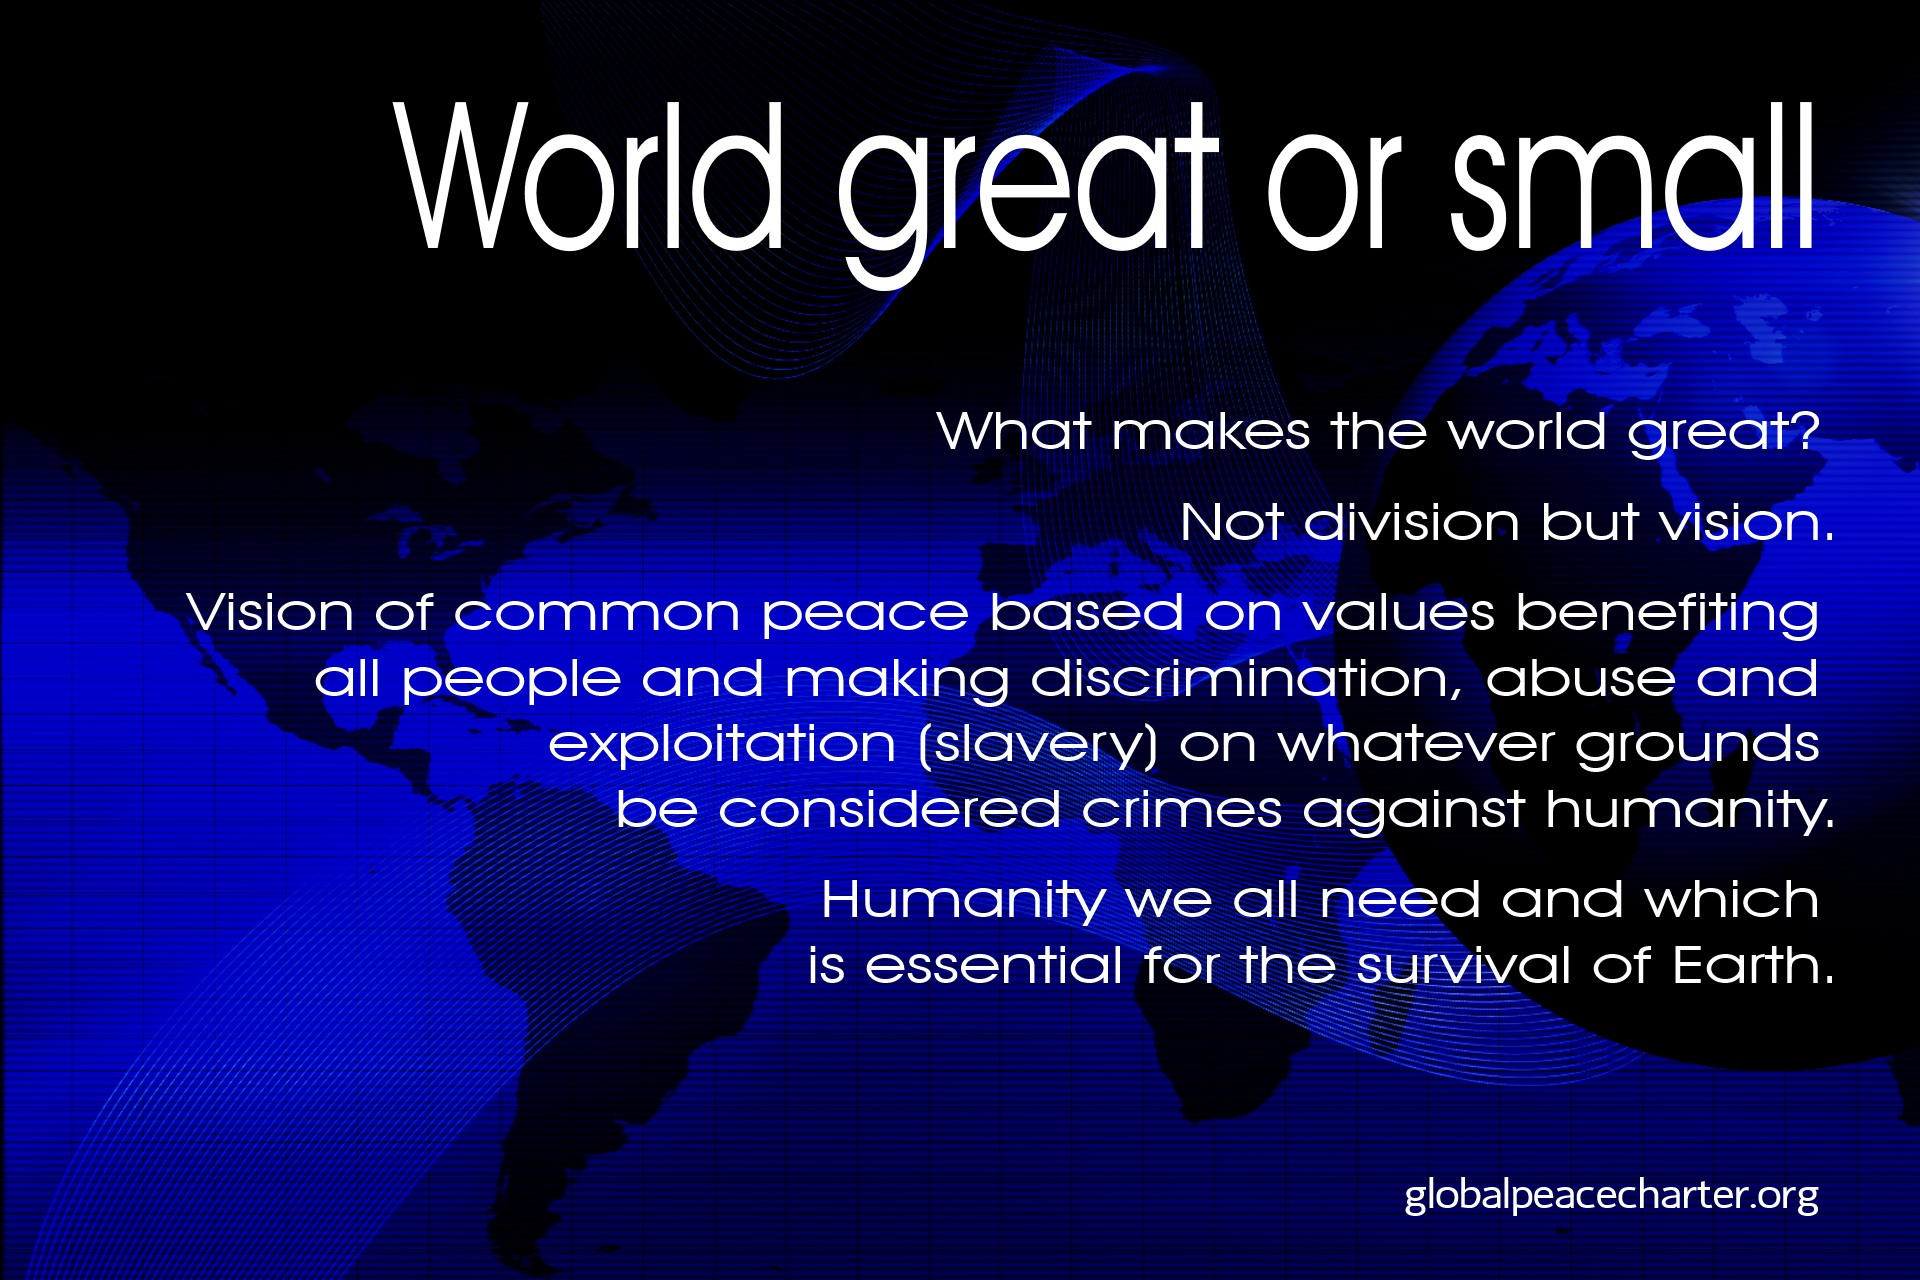 World great or small